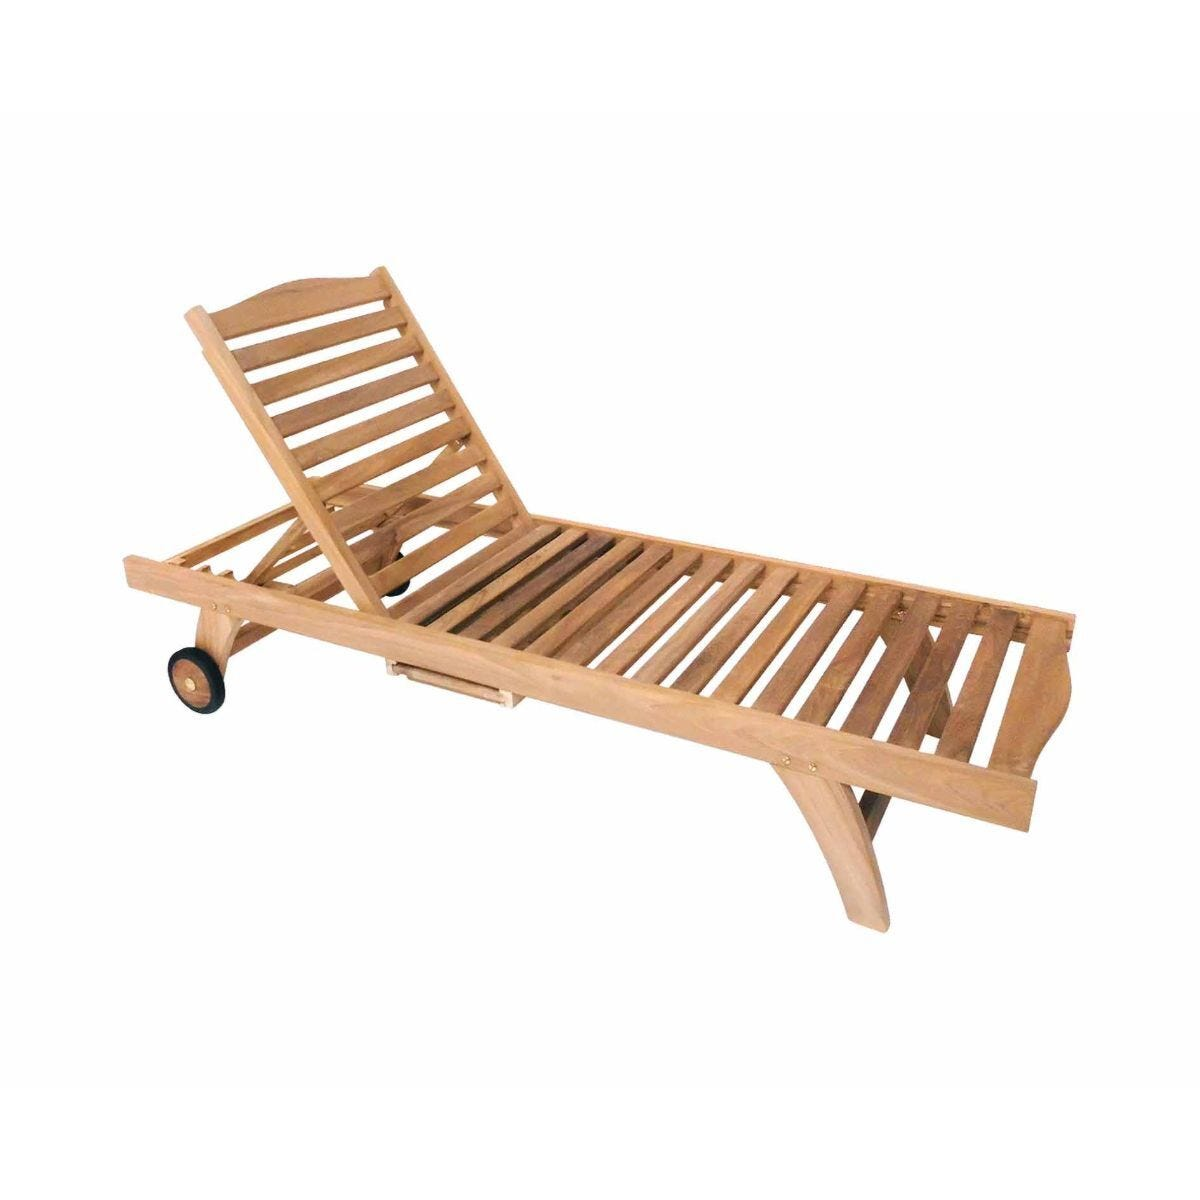 Charles Bentley Wooden Teak Garden Reclining Sun Lounger